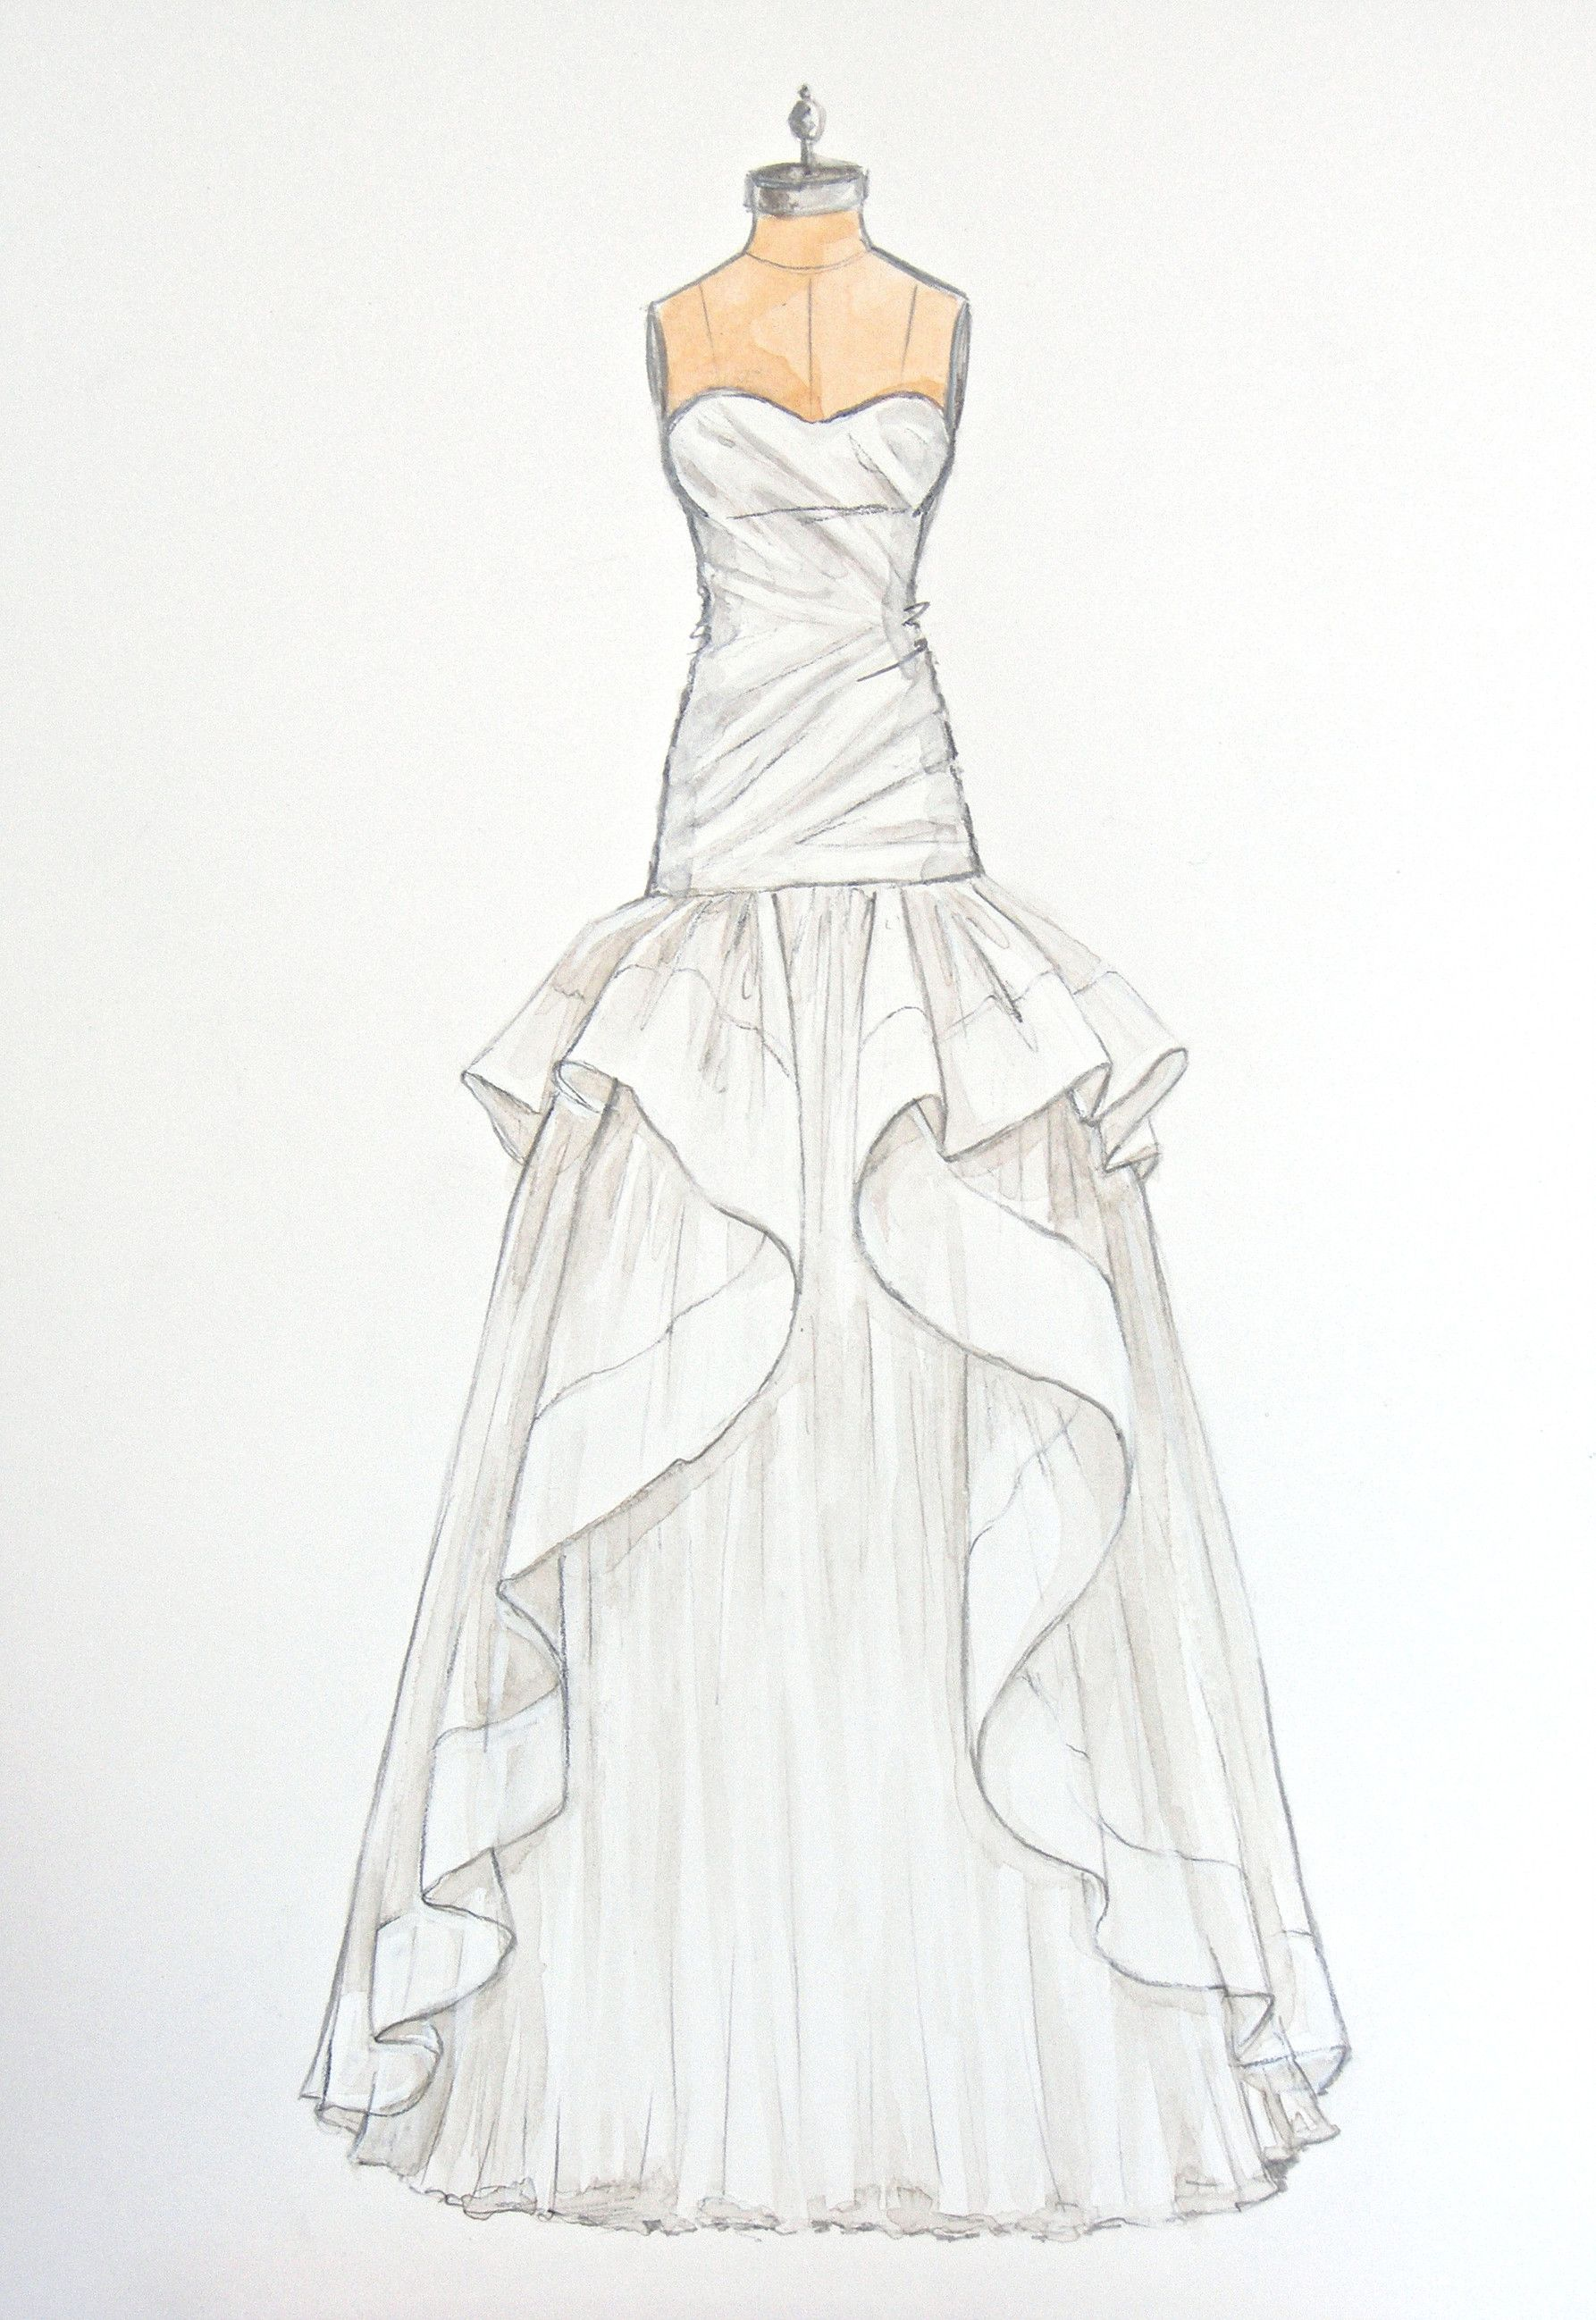 It's just an image of Epic Drawing Of Dress Design